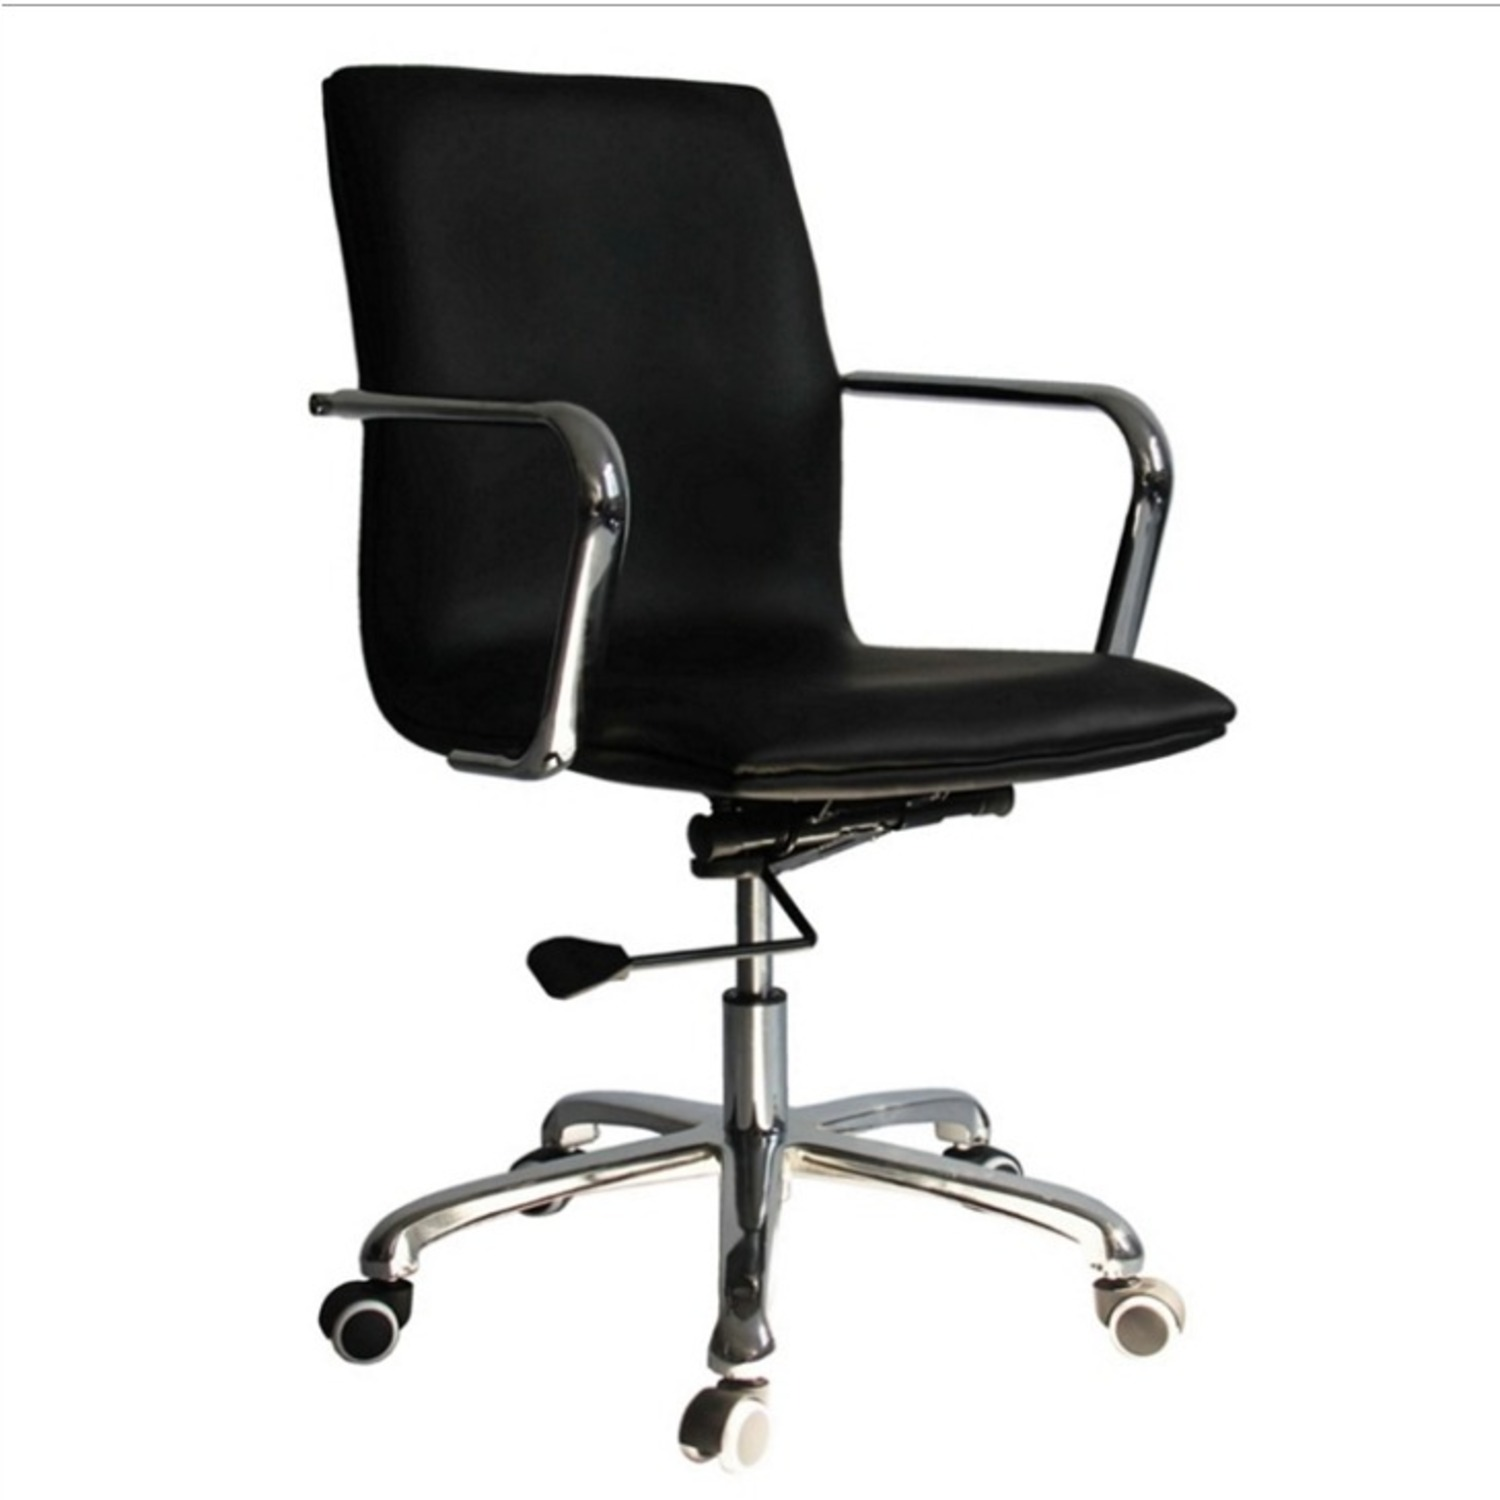 Office Chair In Mid-Back Black Leatherette Finish - image-0